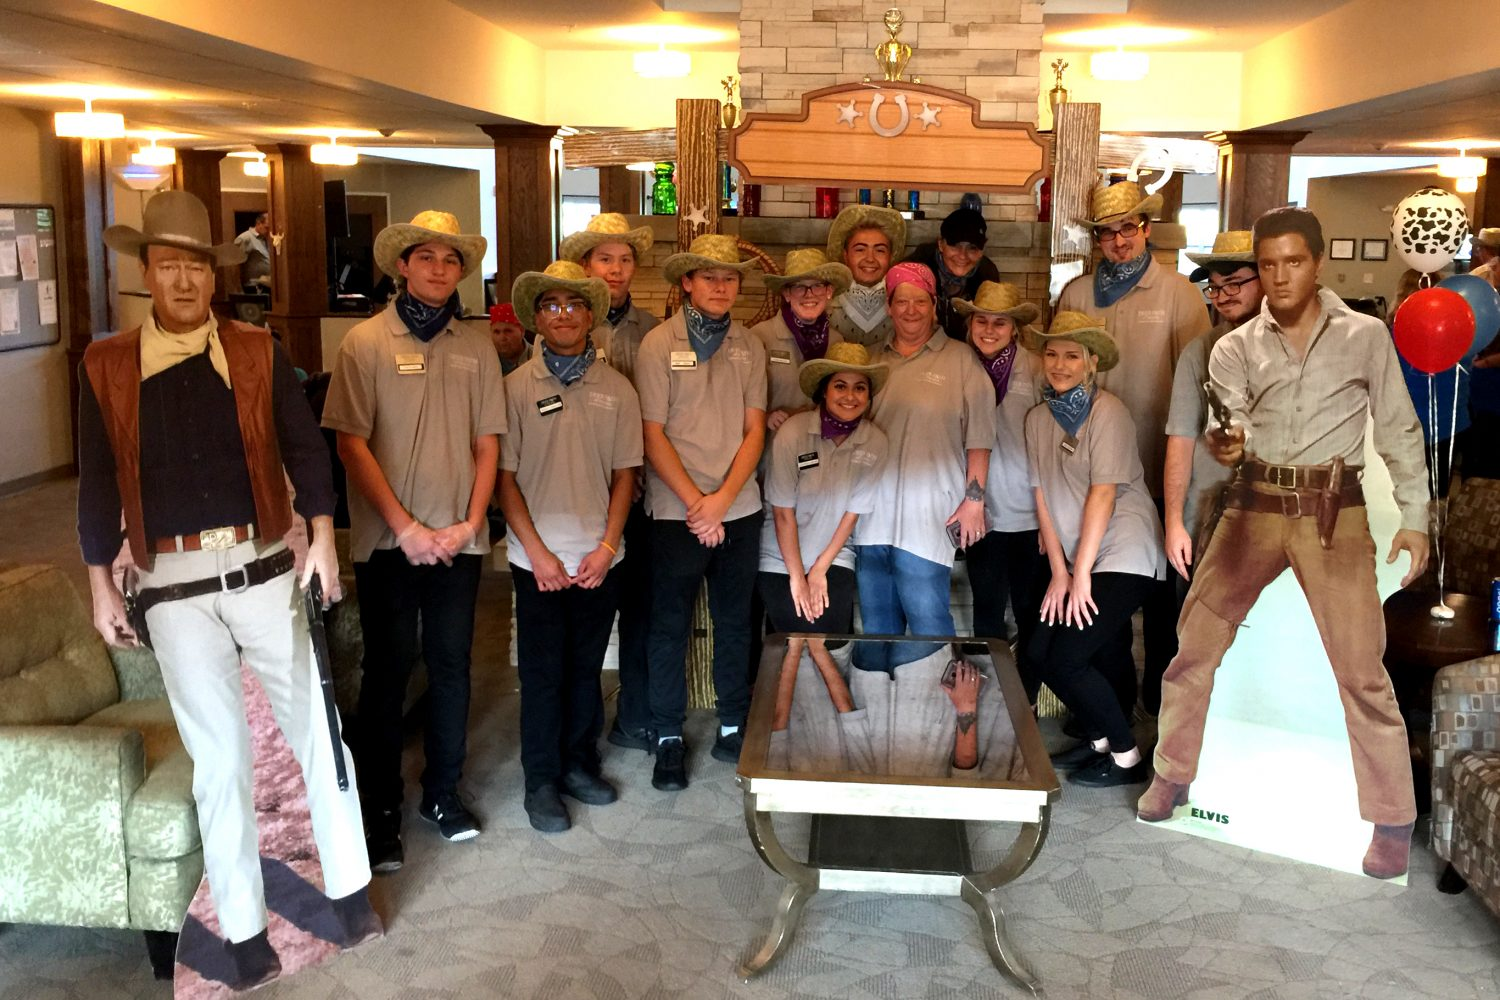 Deer Path Celebrates 6th Anniversary with Western-Themed Party